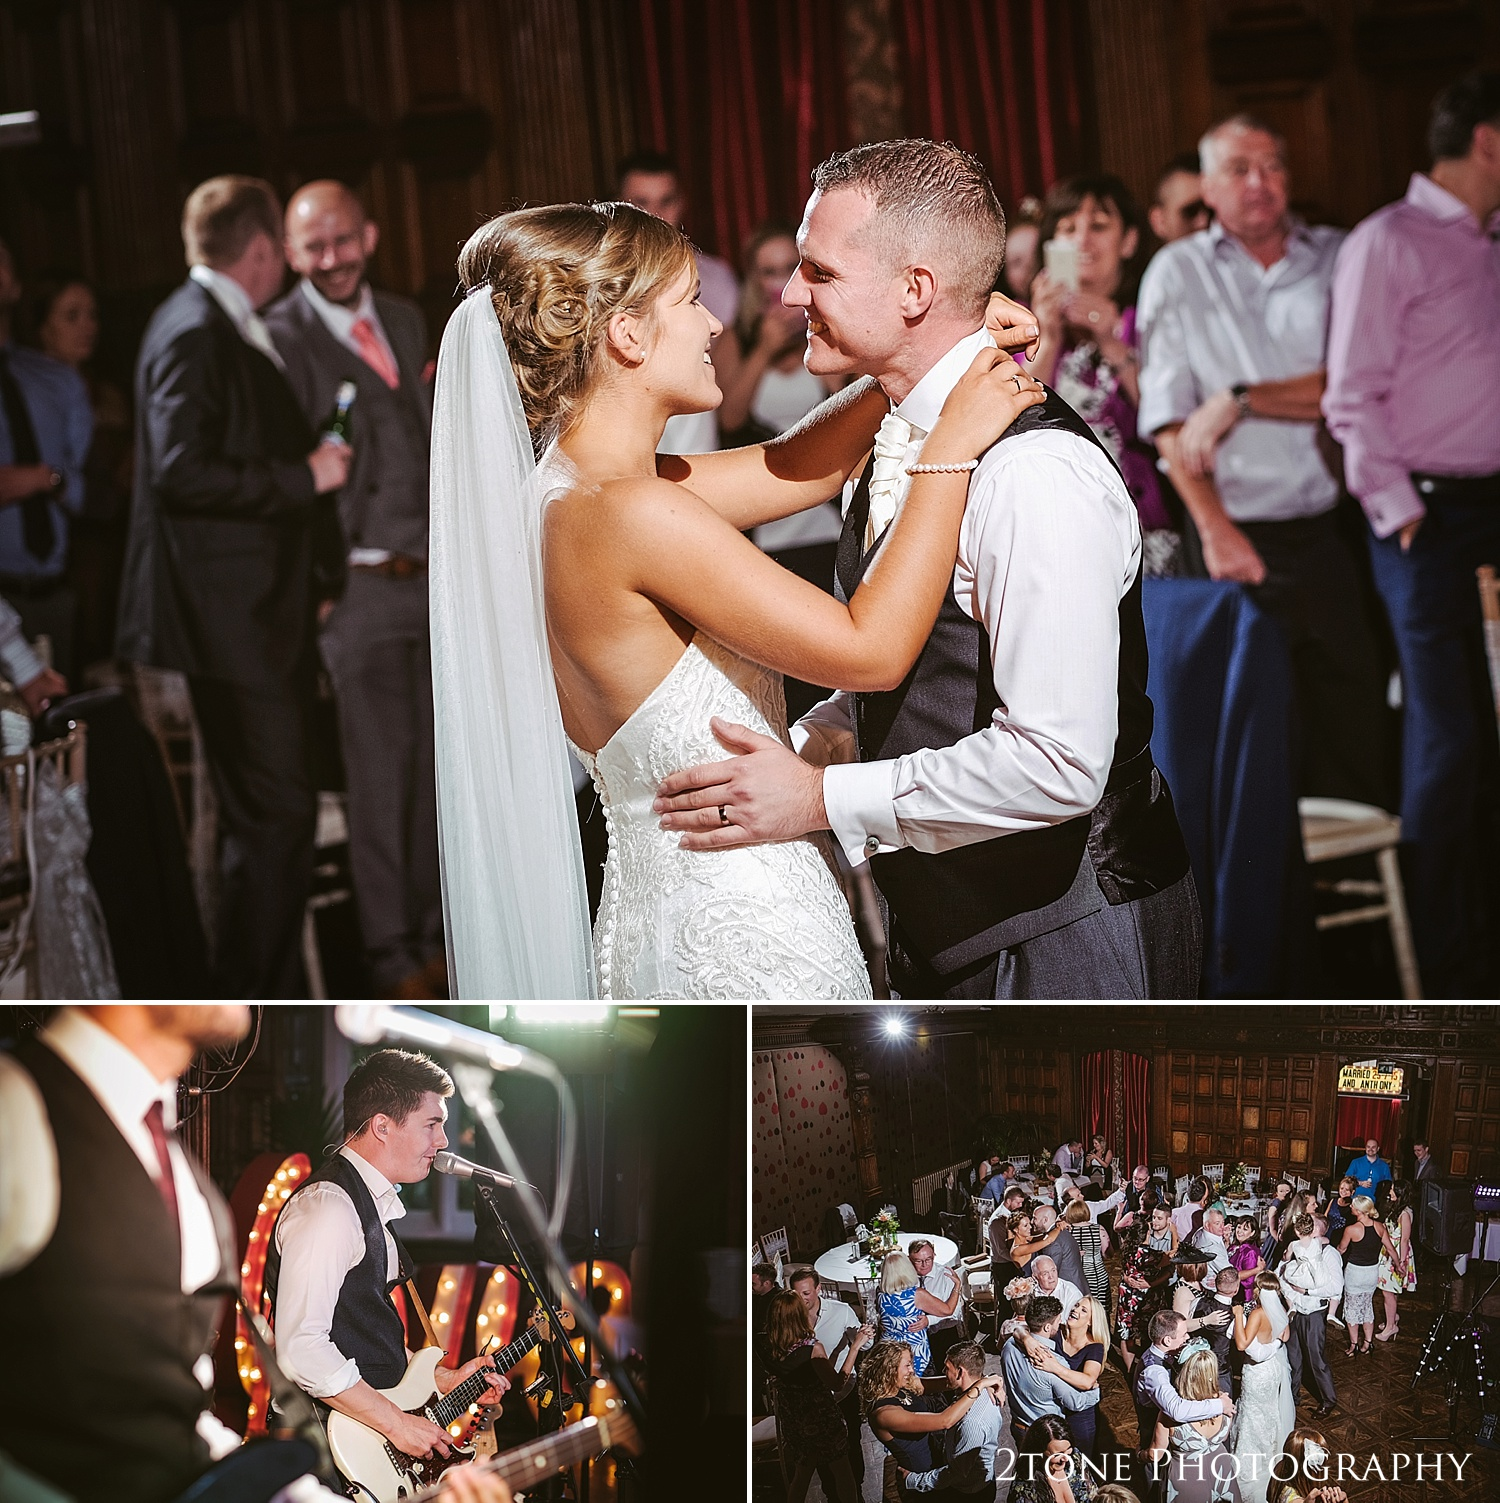 The bride and grooms first dance at Jesmond Dene House in Newcastle by 2tone Photography www.2tonephotography.co.uk